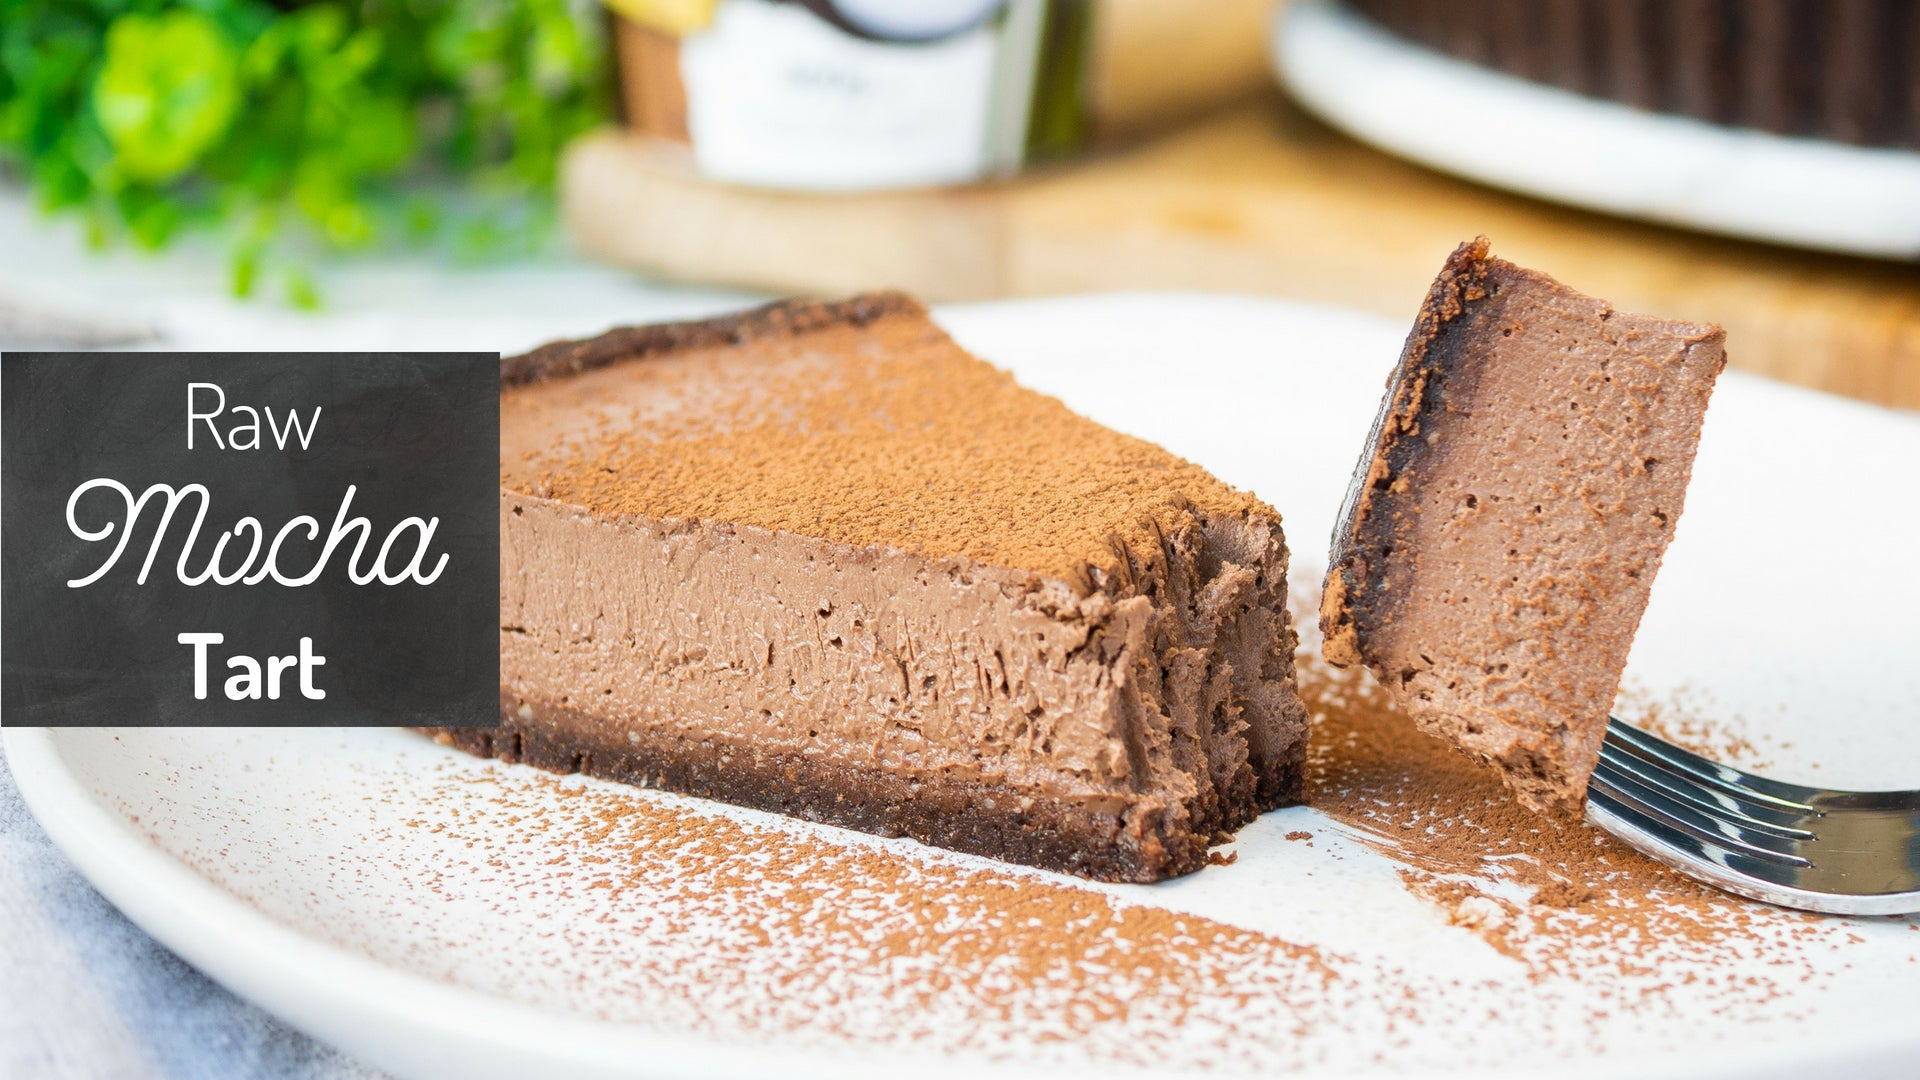 Raw Mocha Tart recipe